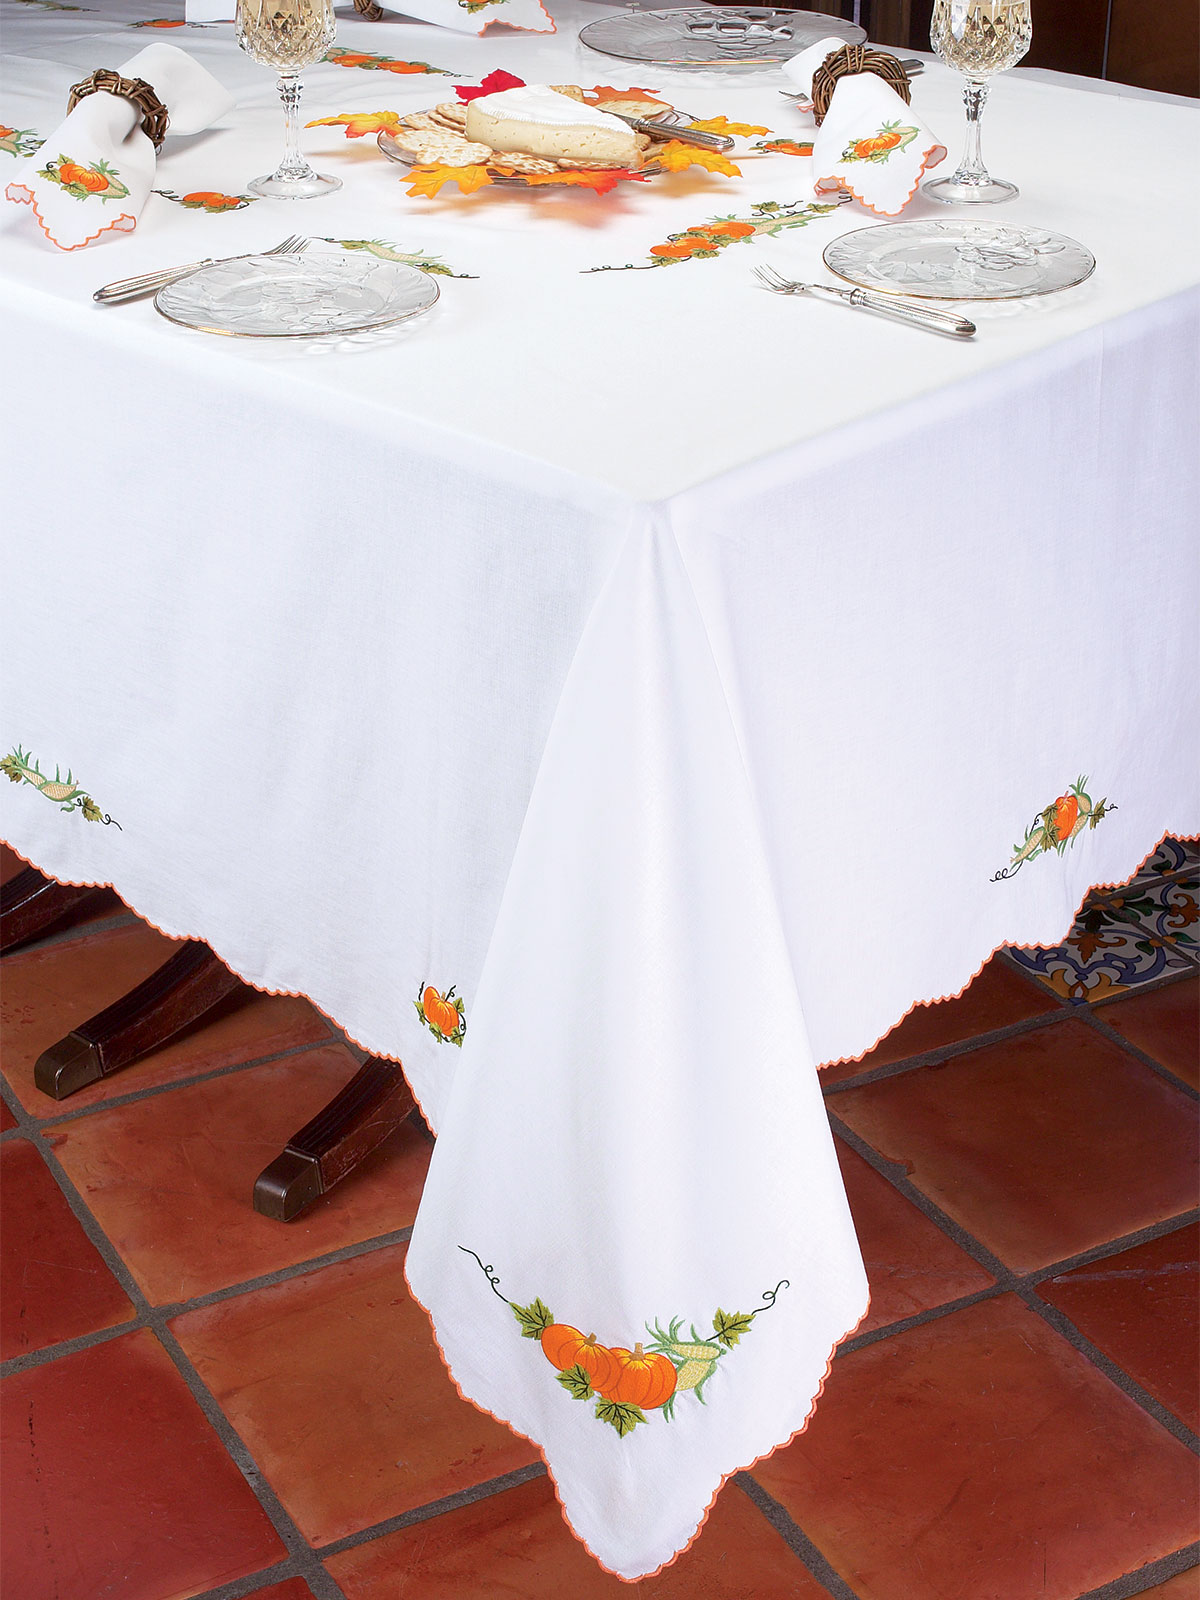 Pair with dinnerware that matches your table linens' motif—for blue floral tablecloths, set out dinner plates, salad plates and bowls with navy edging. Find high-quality linen, polyester and cotton tablecloths to match your home's style.